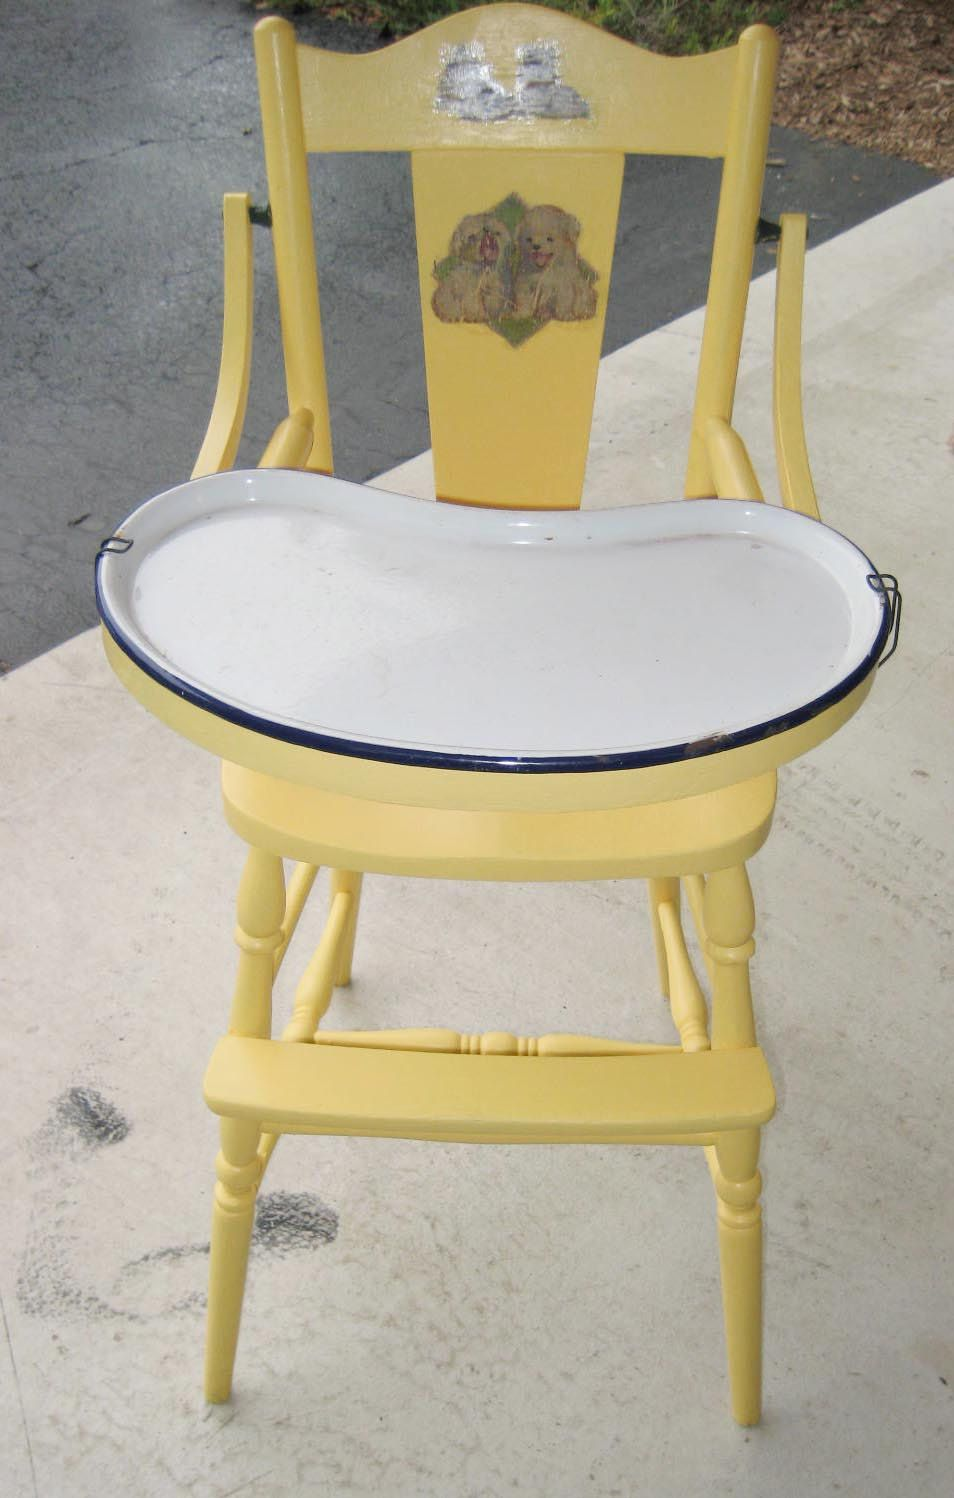 Classic 1940's high chair with enamel tray and original decals - Classic 1940's High Chair With Enamel Tray And Original Decals